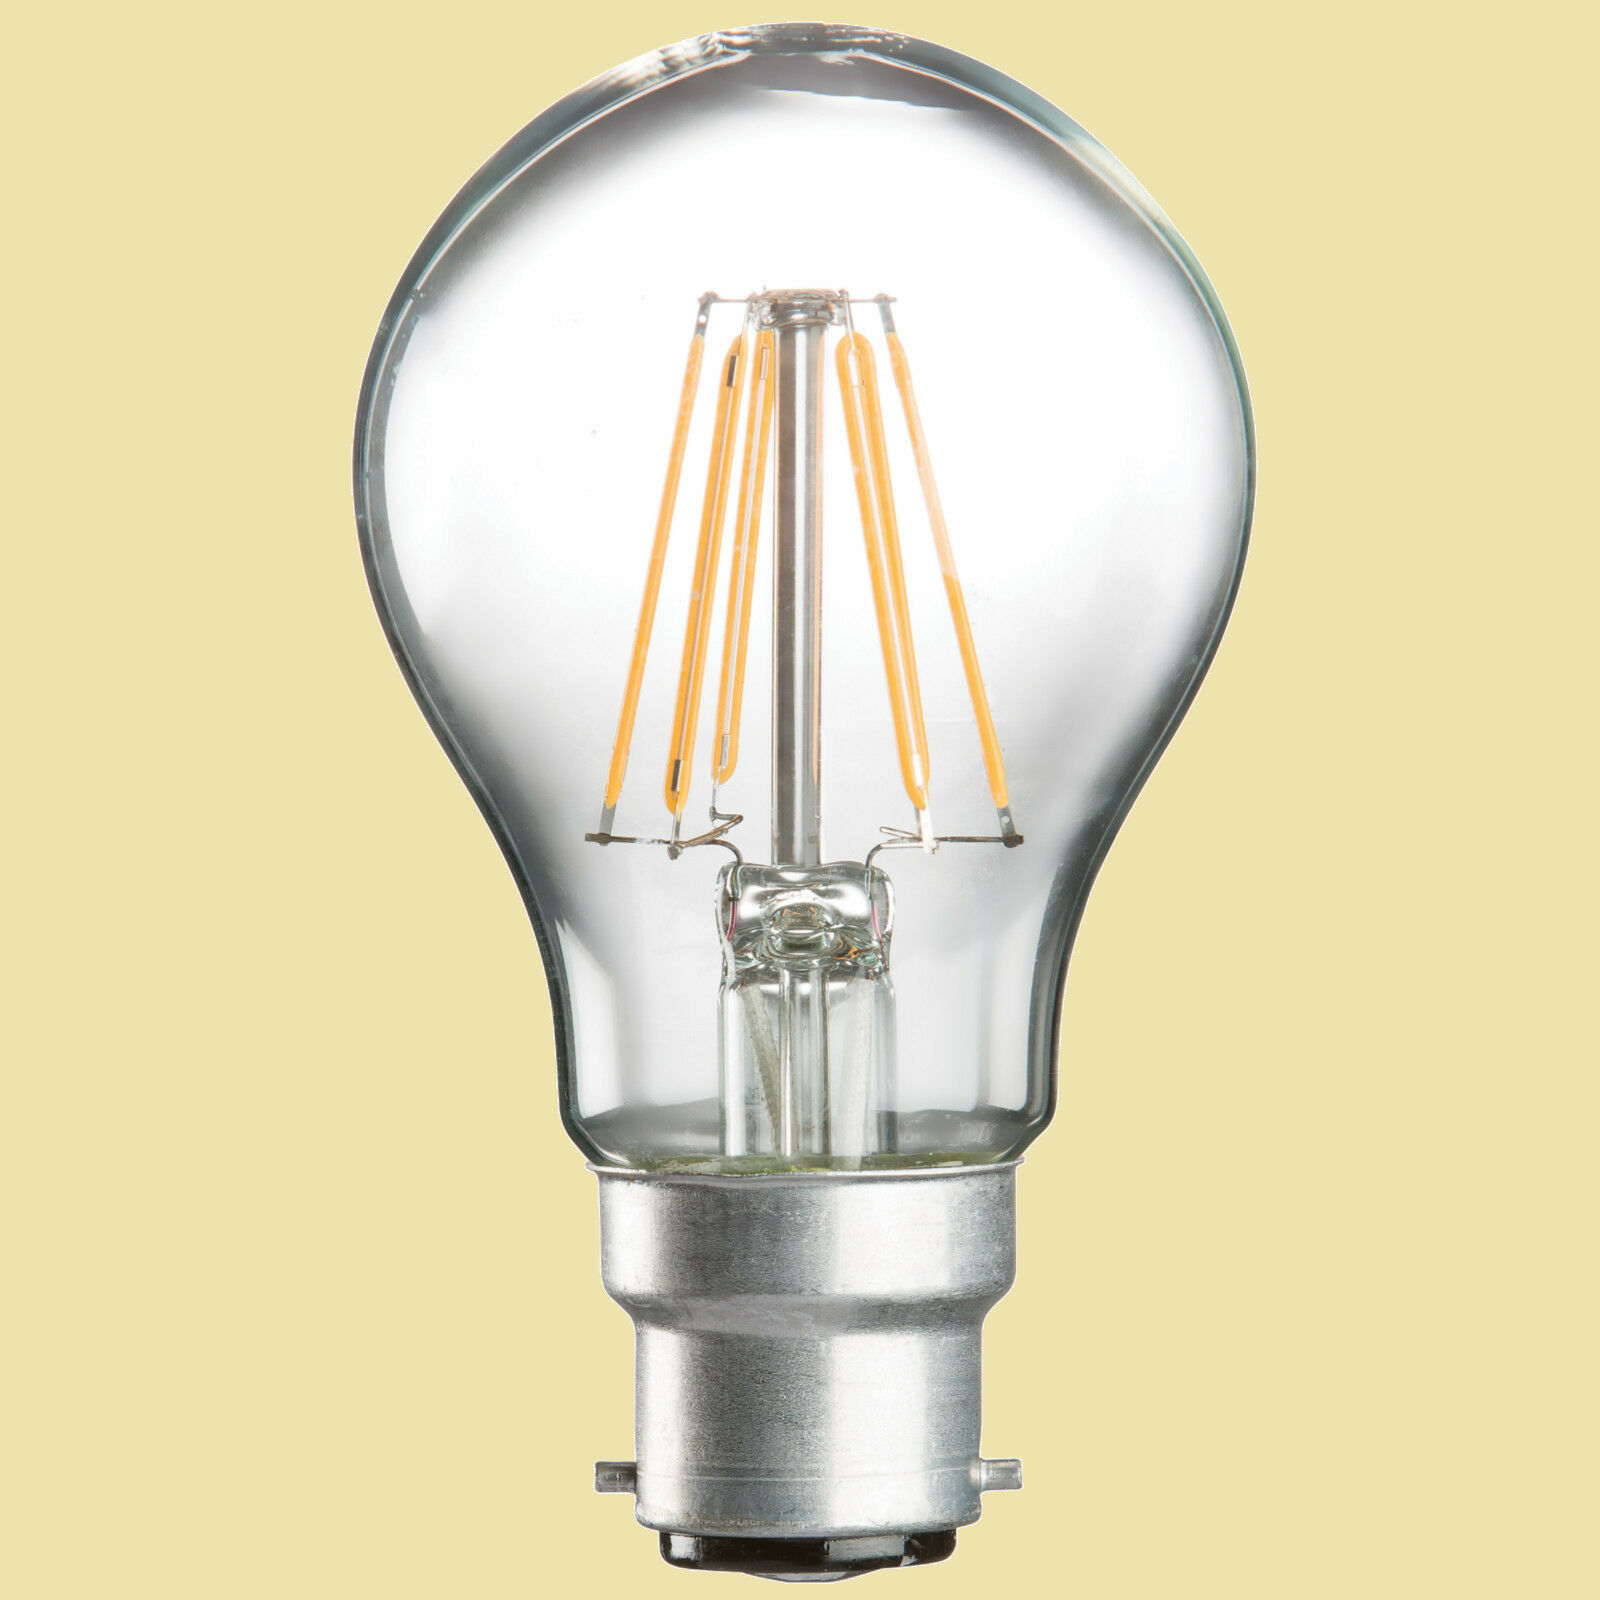 60w Light Bulb replacement in LED GLS 6w B22(Bayonet) E27(Screw) No xtra postage